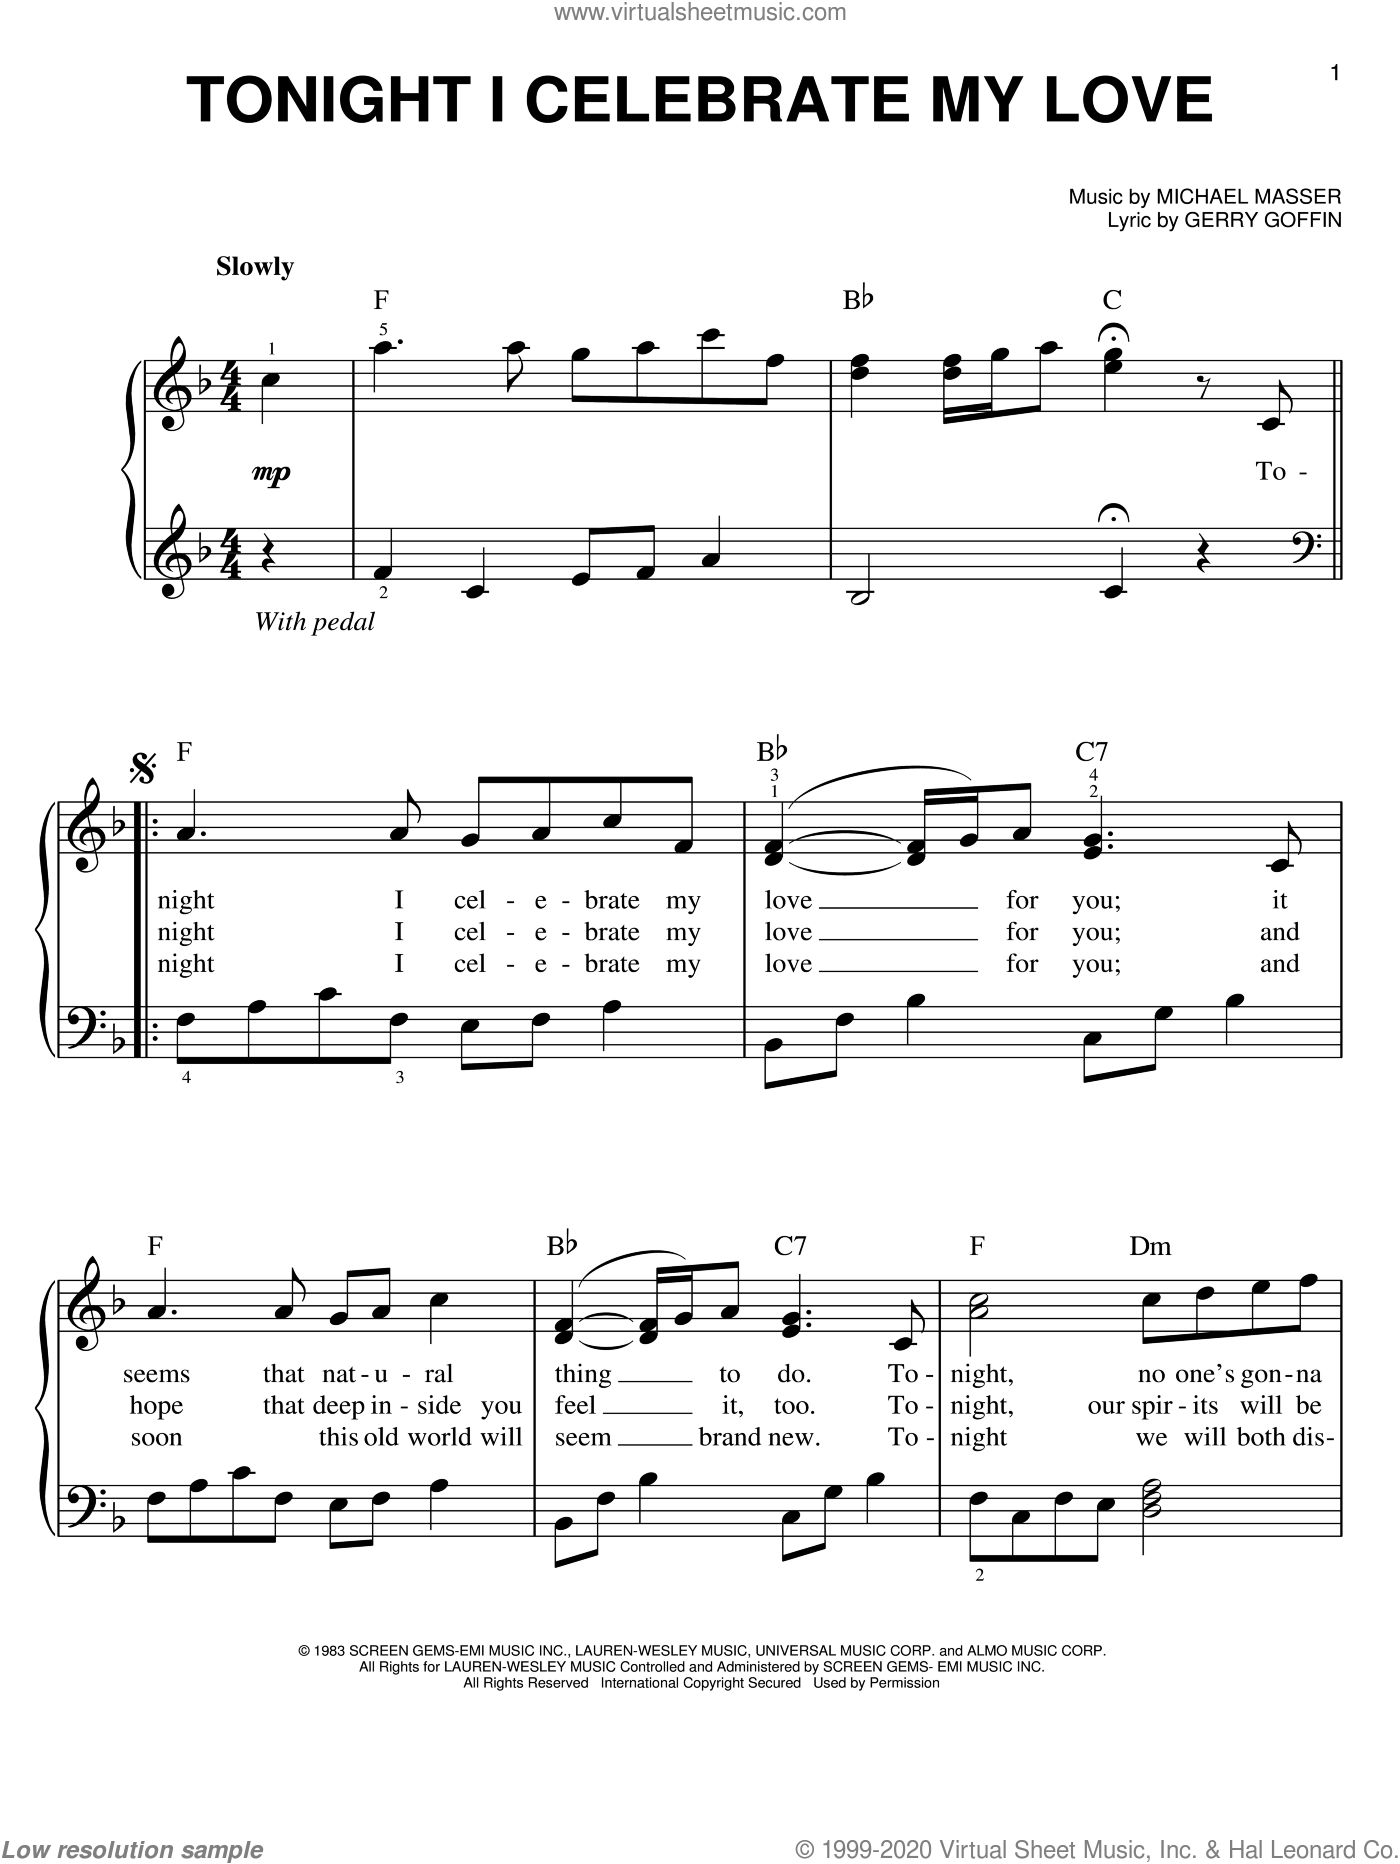 Tonight, I Celebrate My Love sheet music for piano solo (chords) by Michael Masser